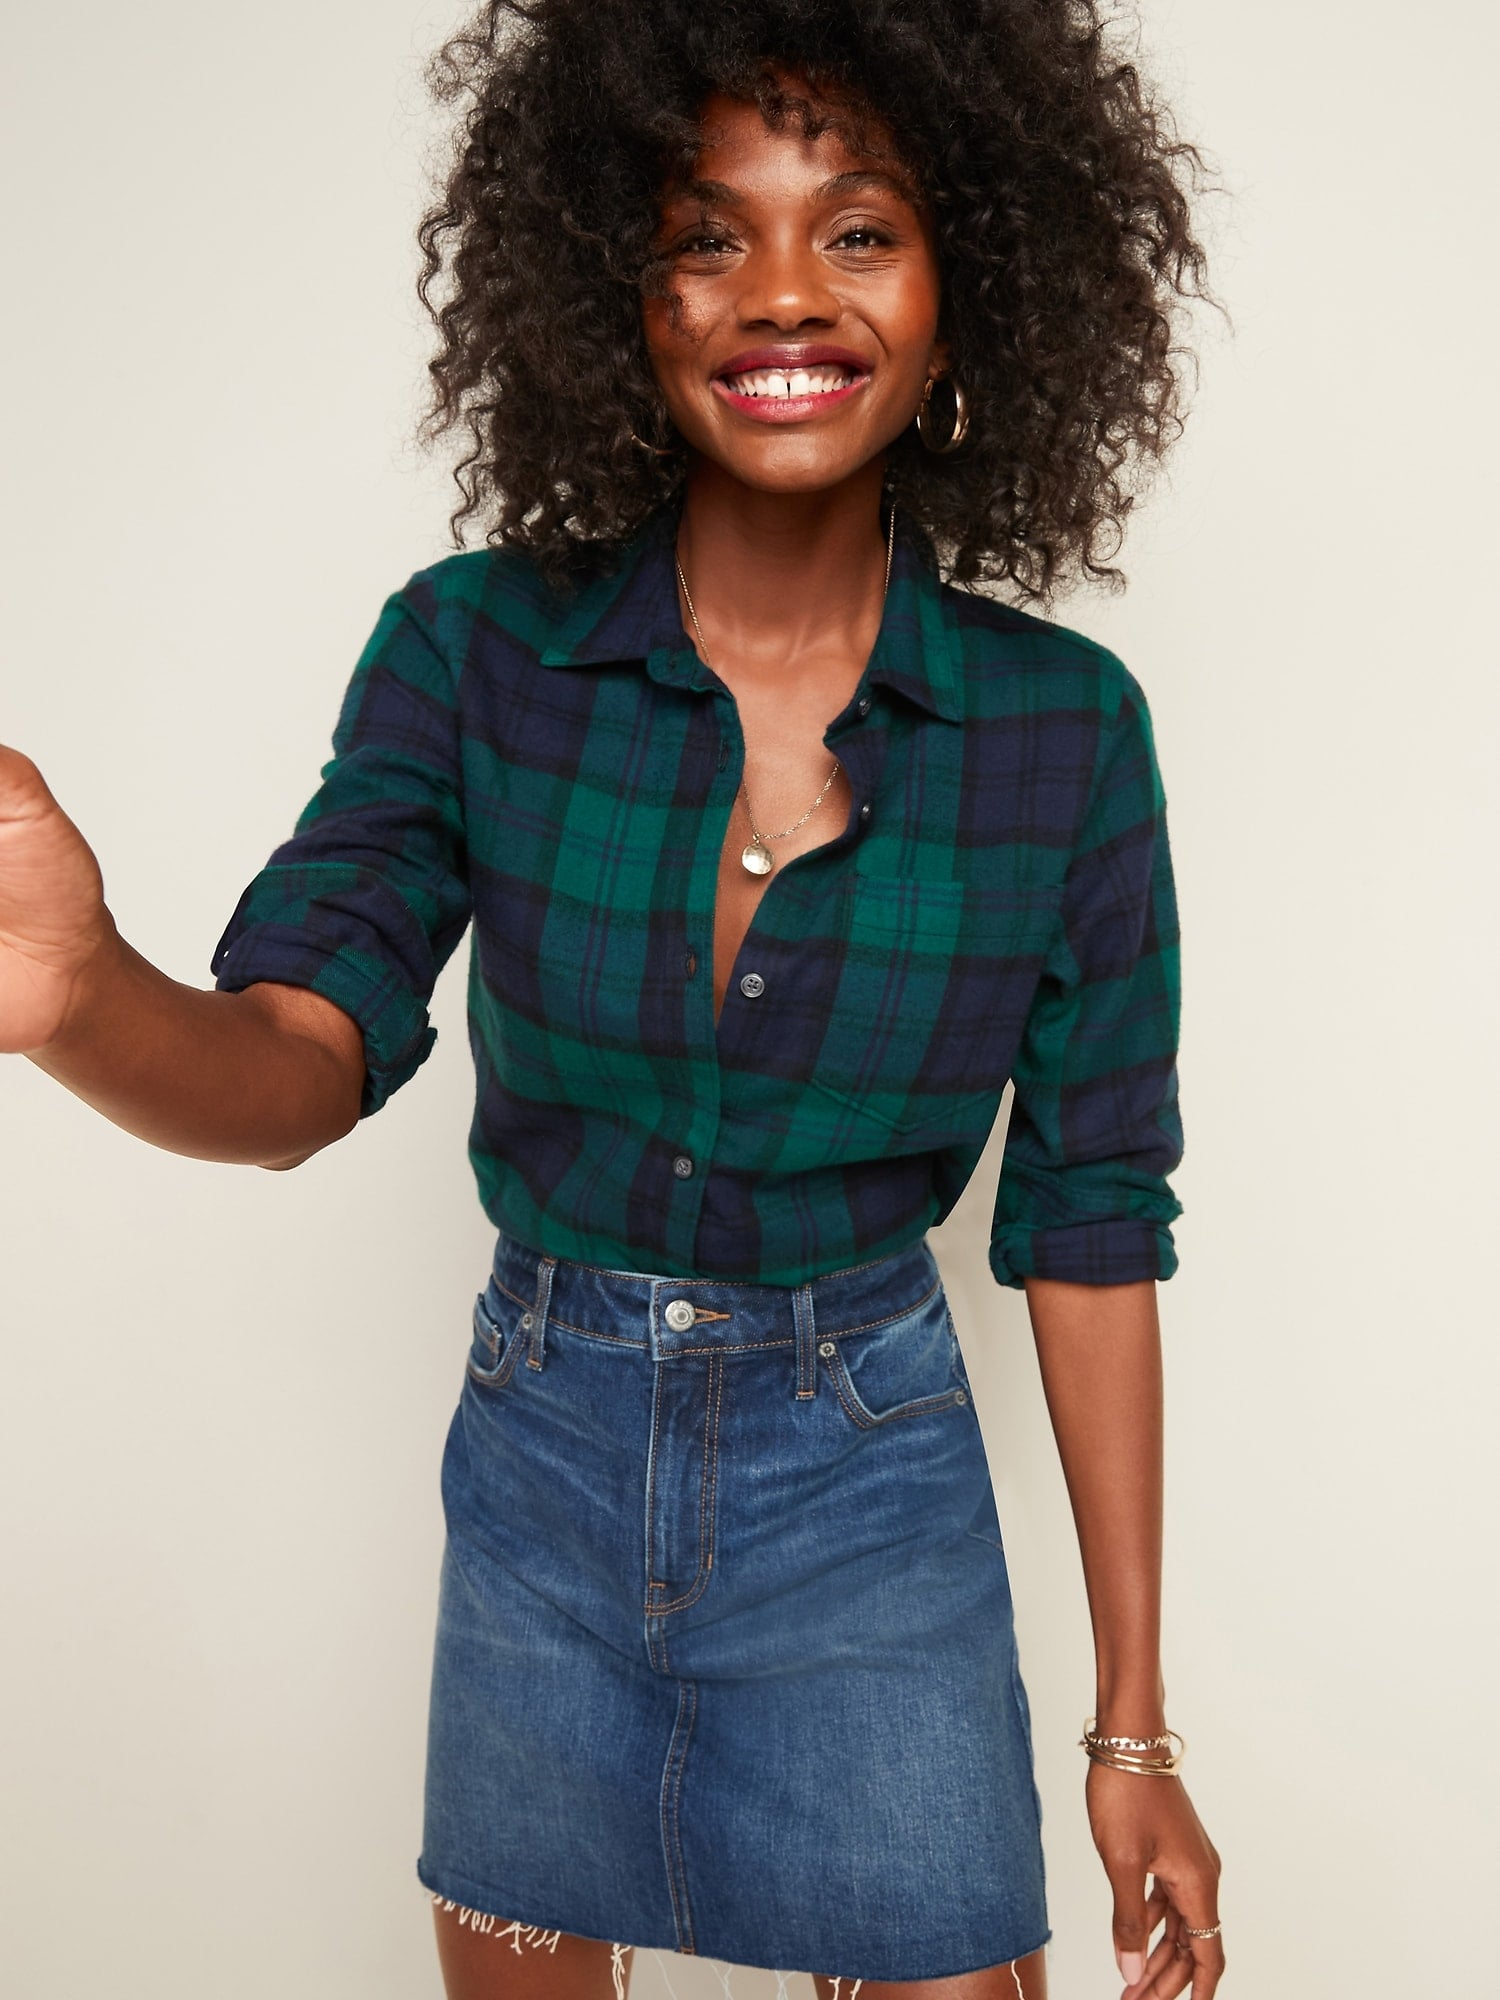 Flannel Shirts For Women at Old Navy